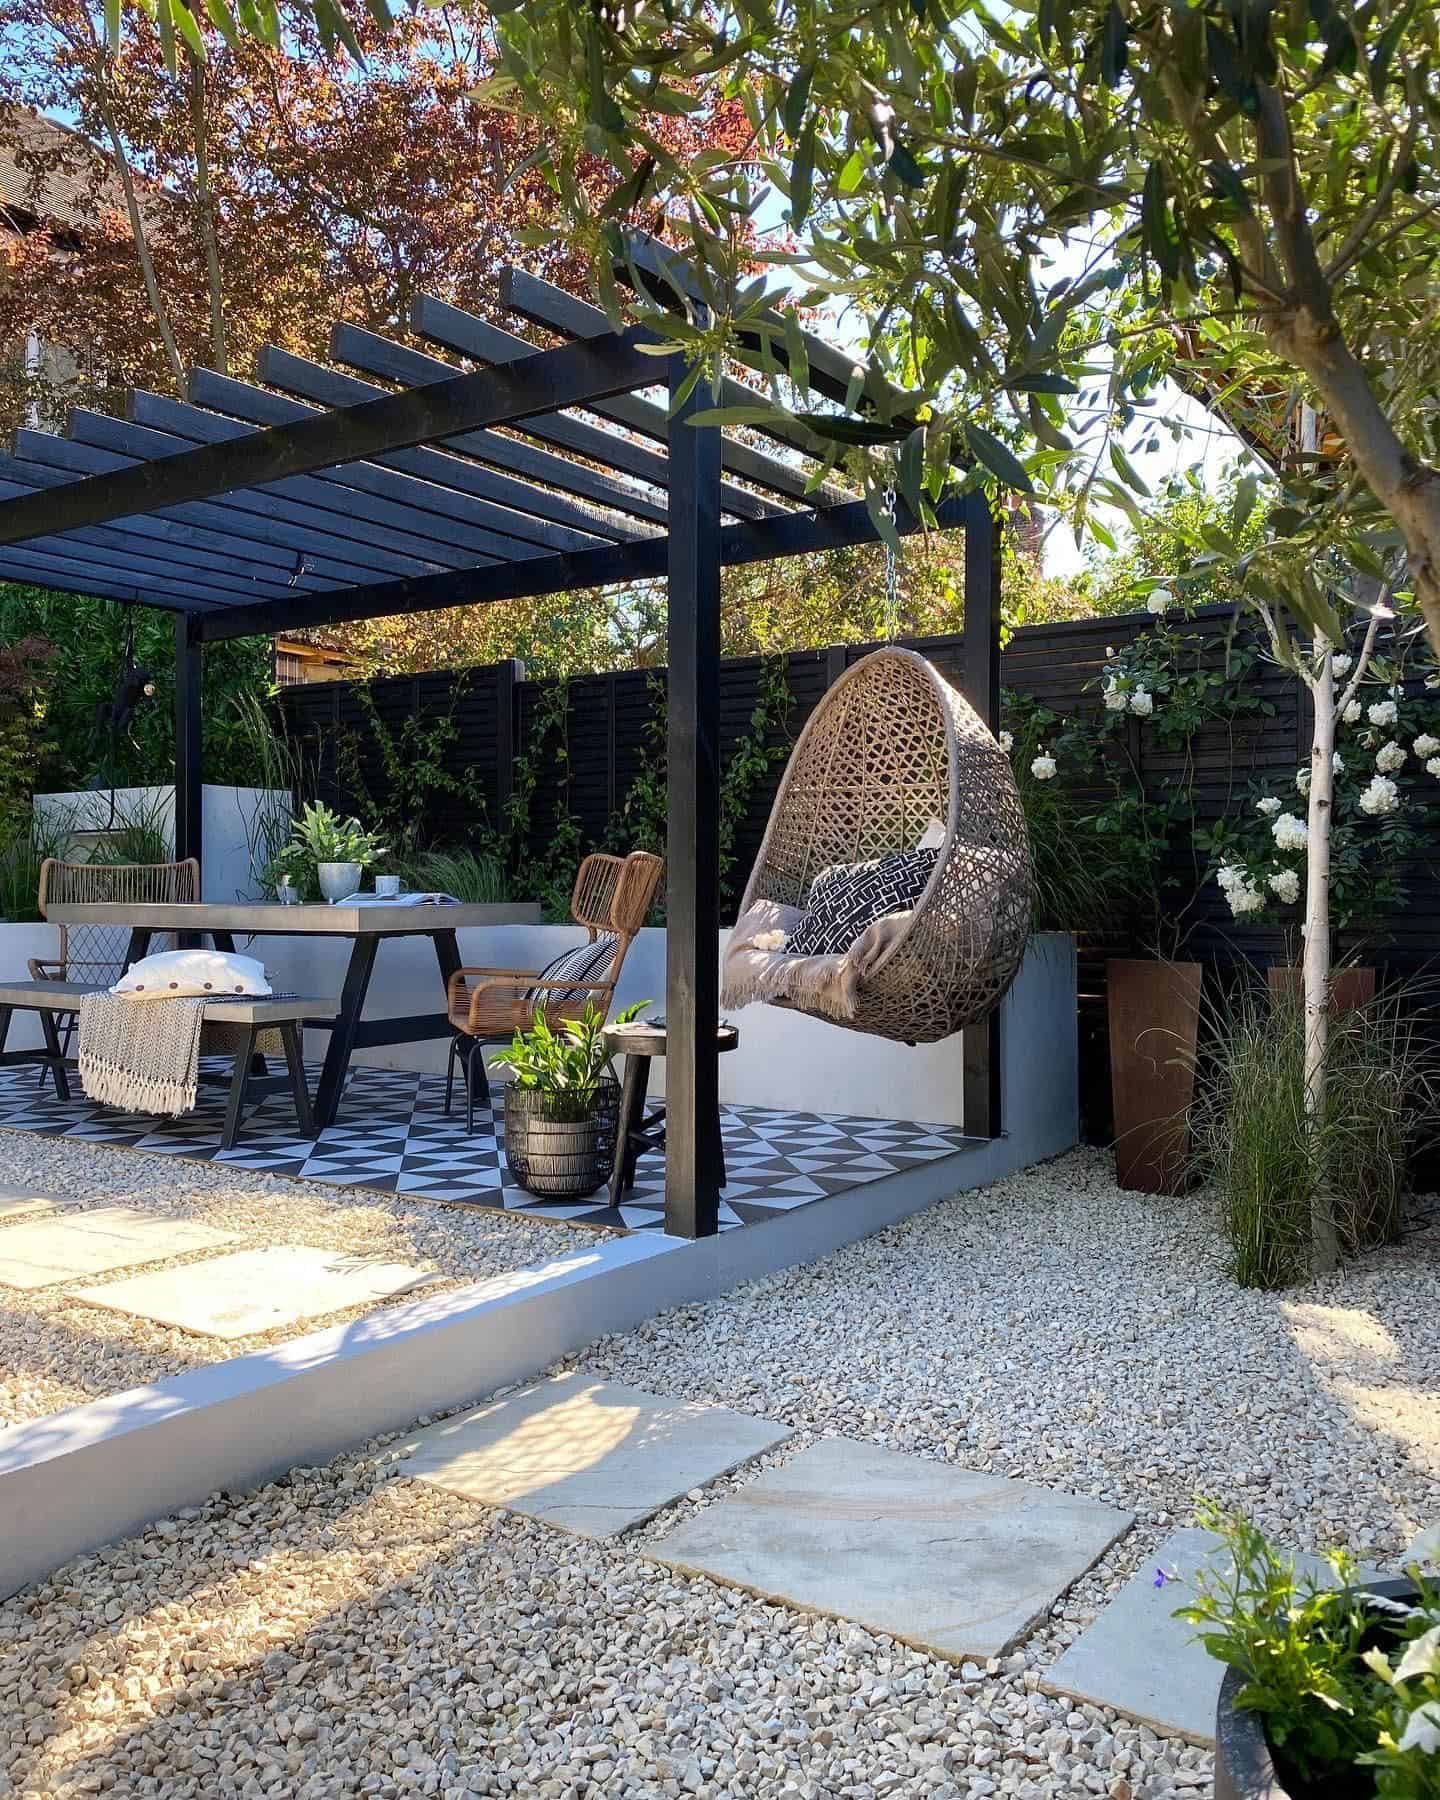 pergola-over-a-patio-with-a-hanging-chair